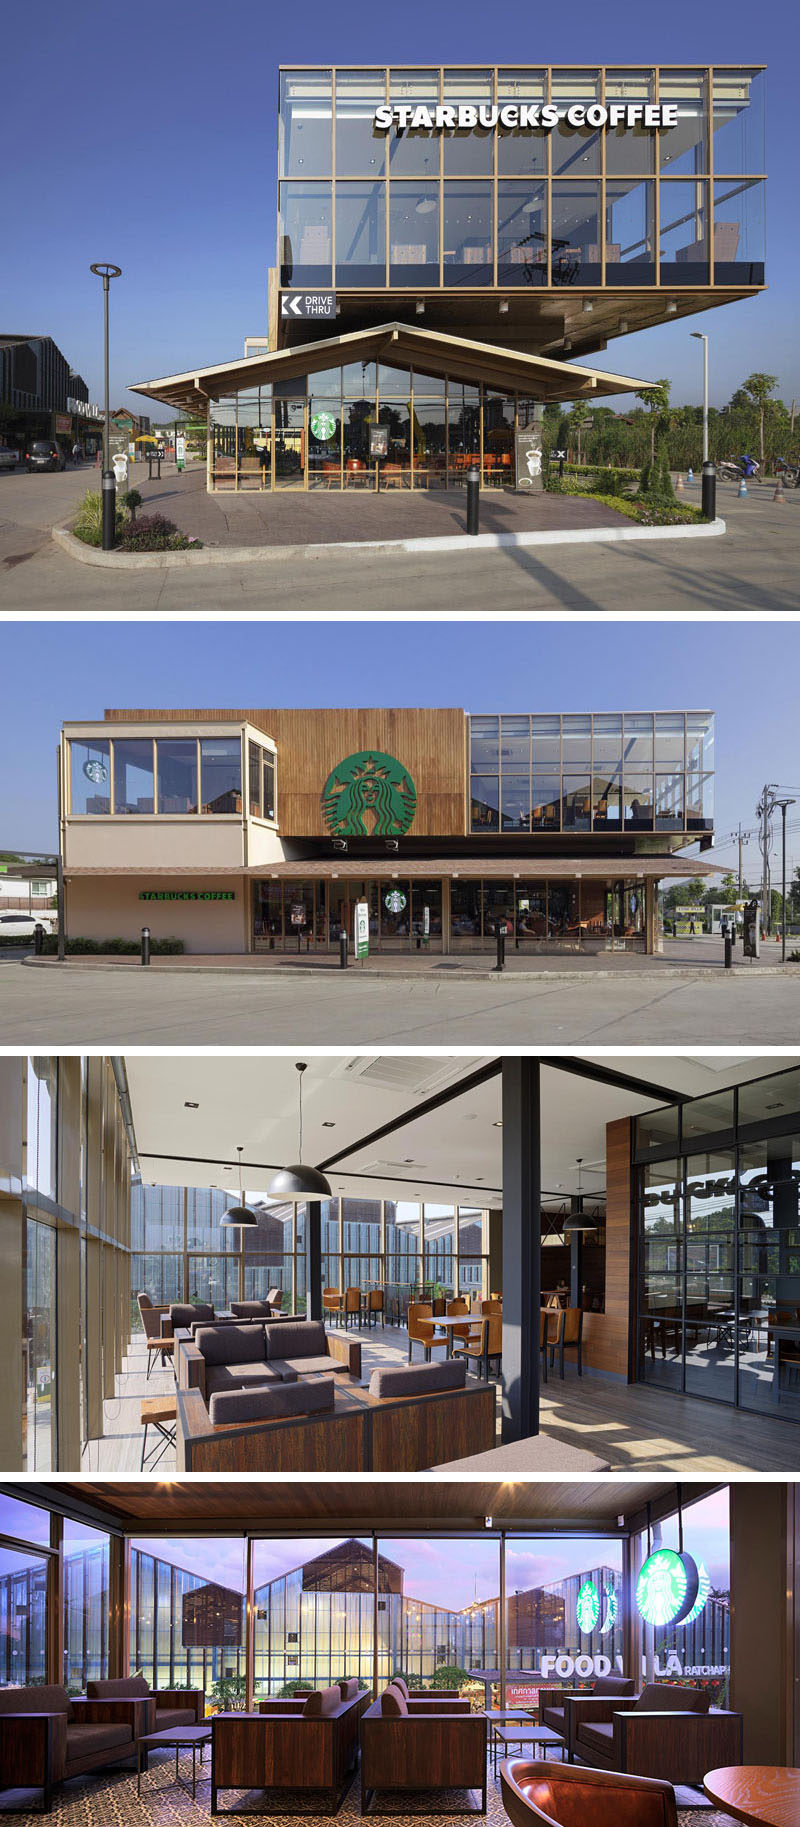 11 Of The Most Uniquely Designed Starbucks Coffee Shops From